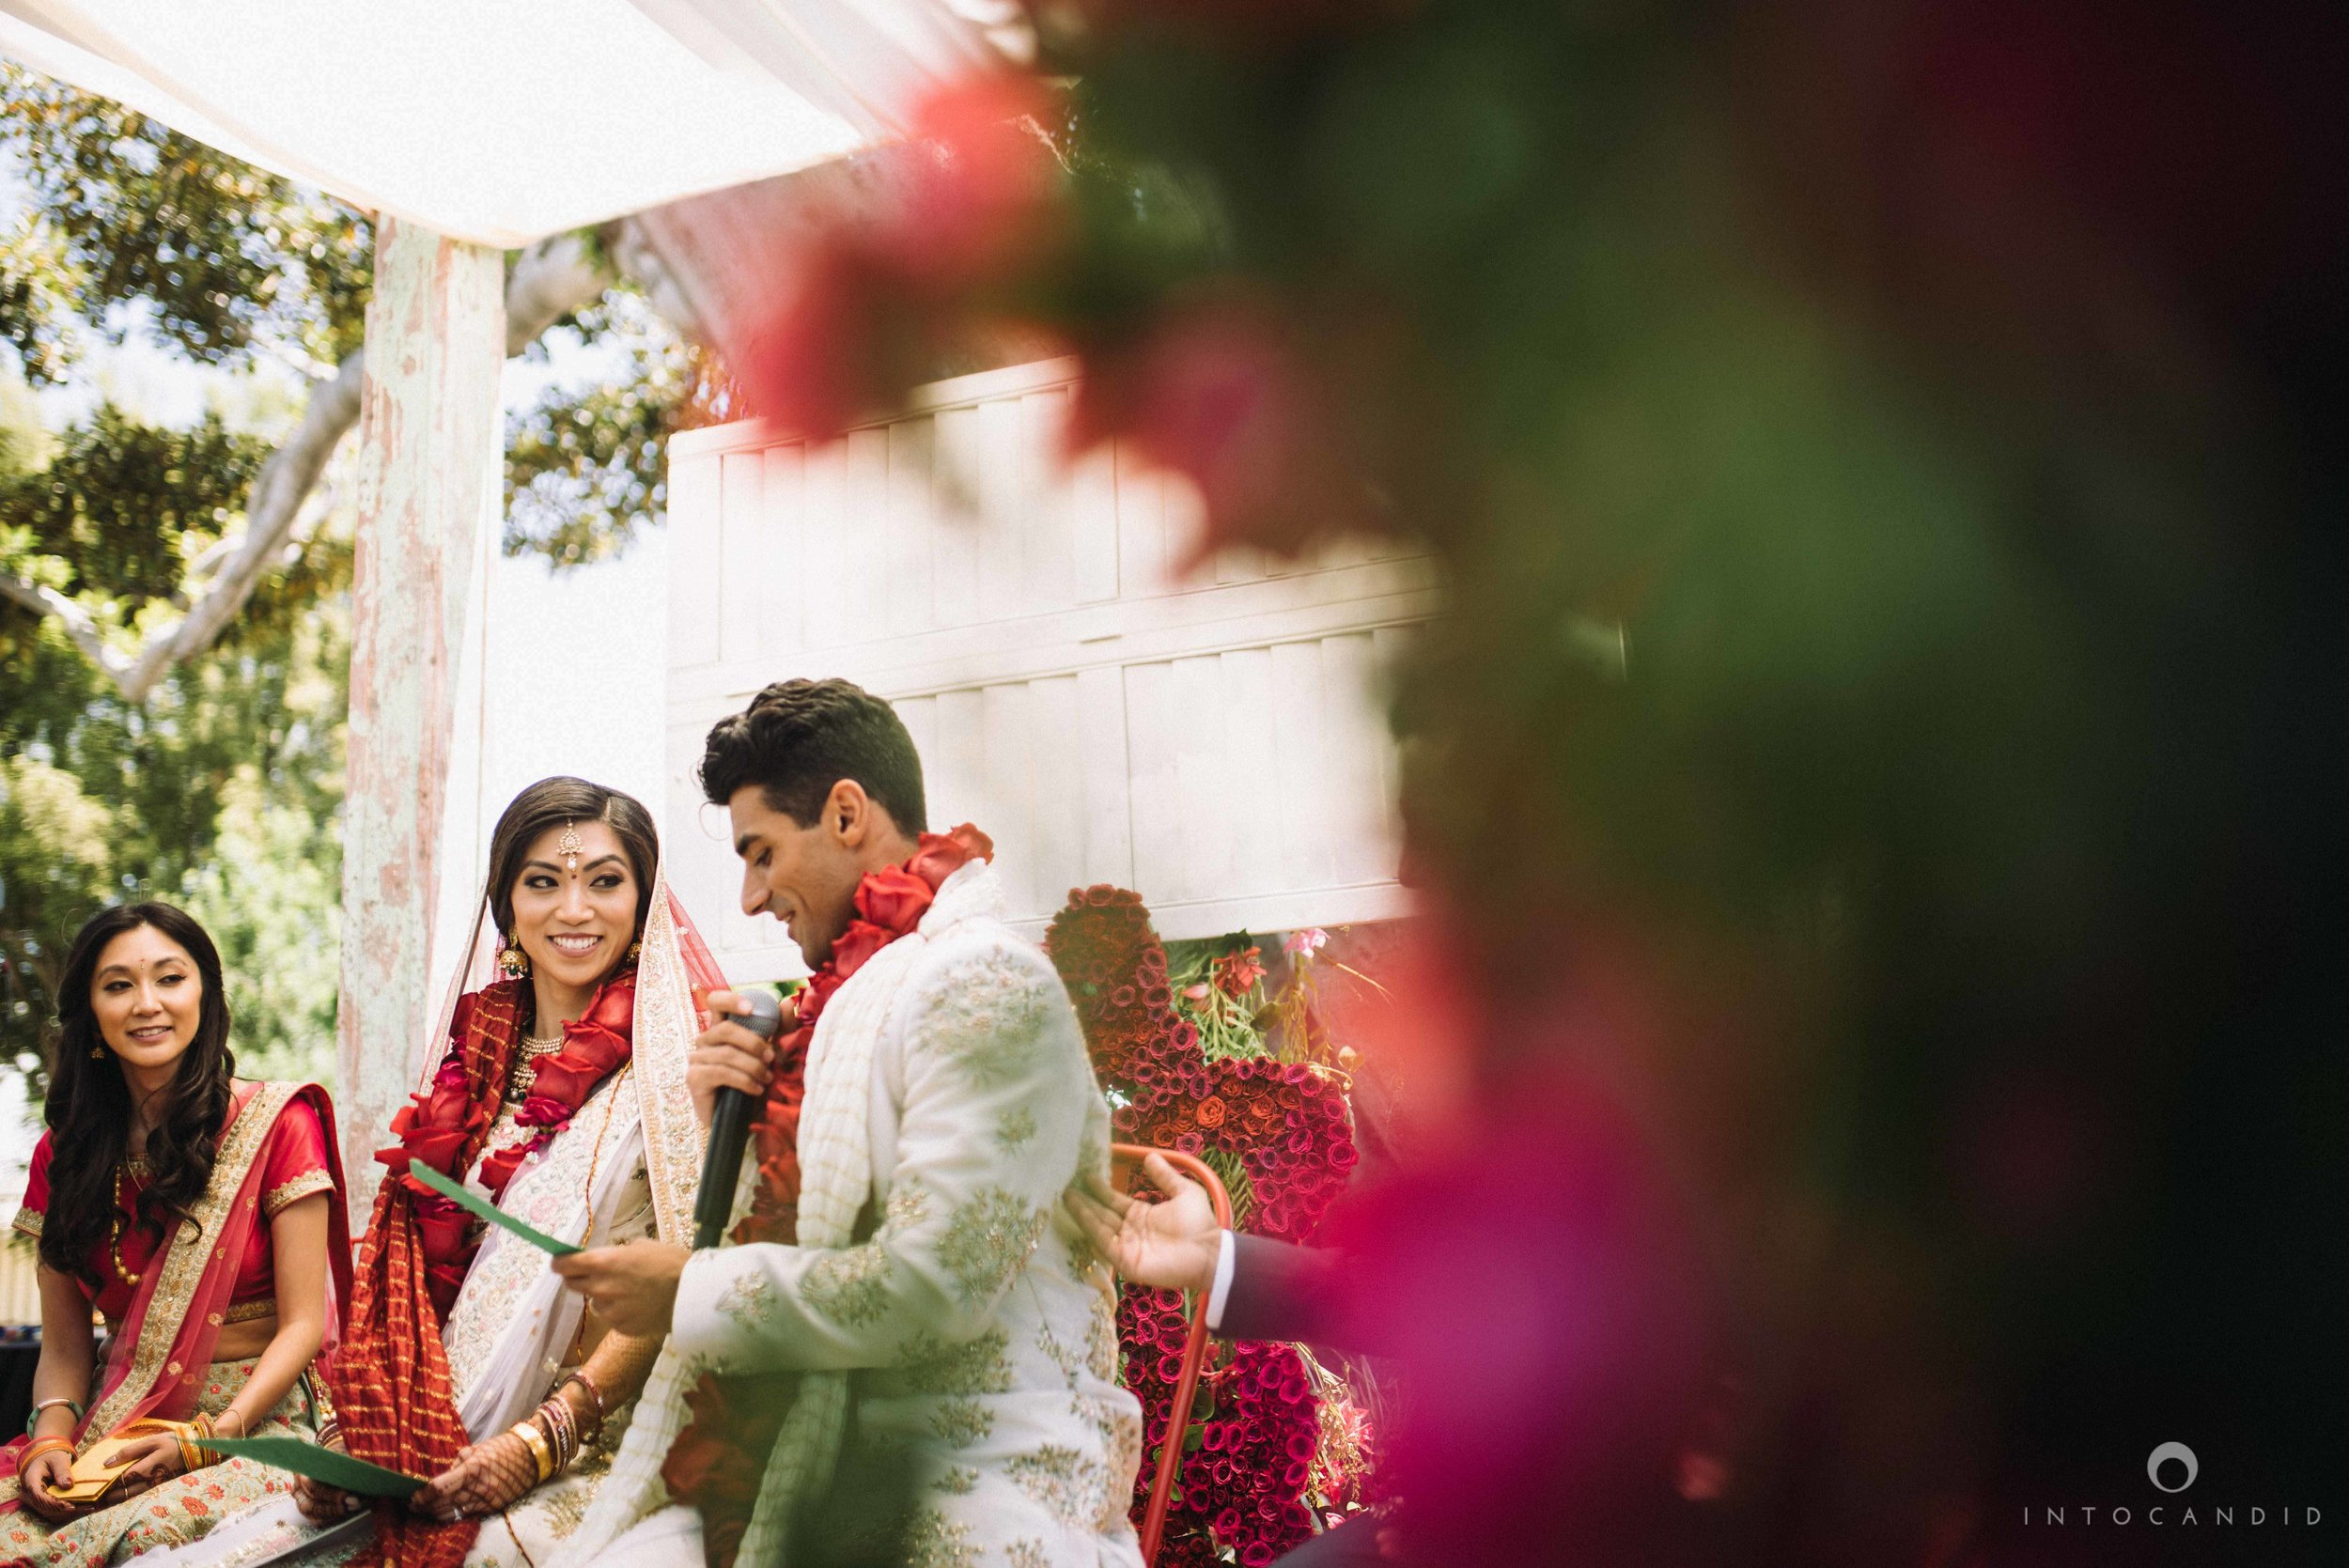 LosAngeles_Indian_Wedding_Photographer_AS_112.jpg